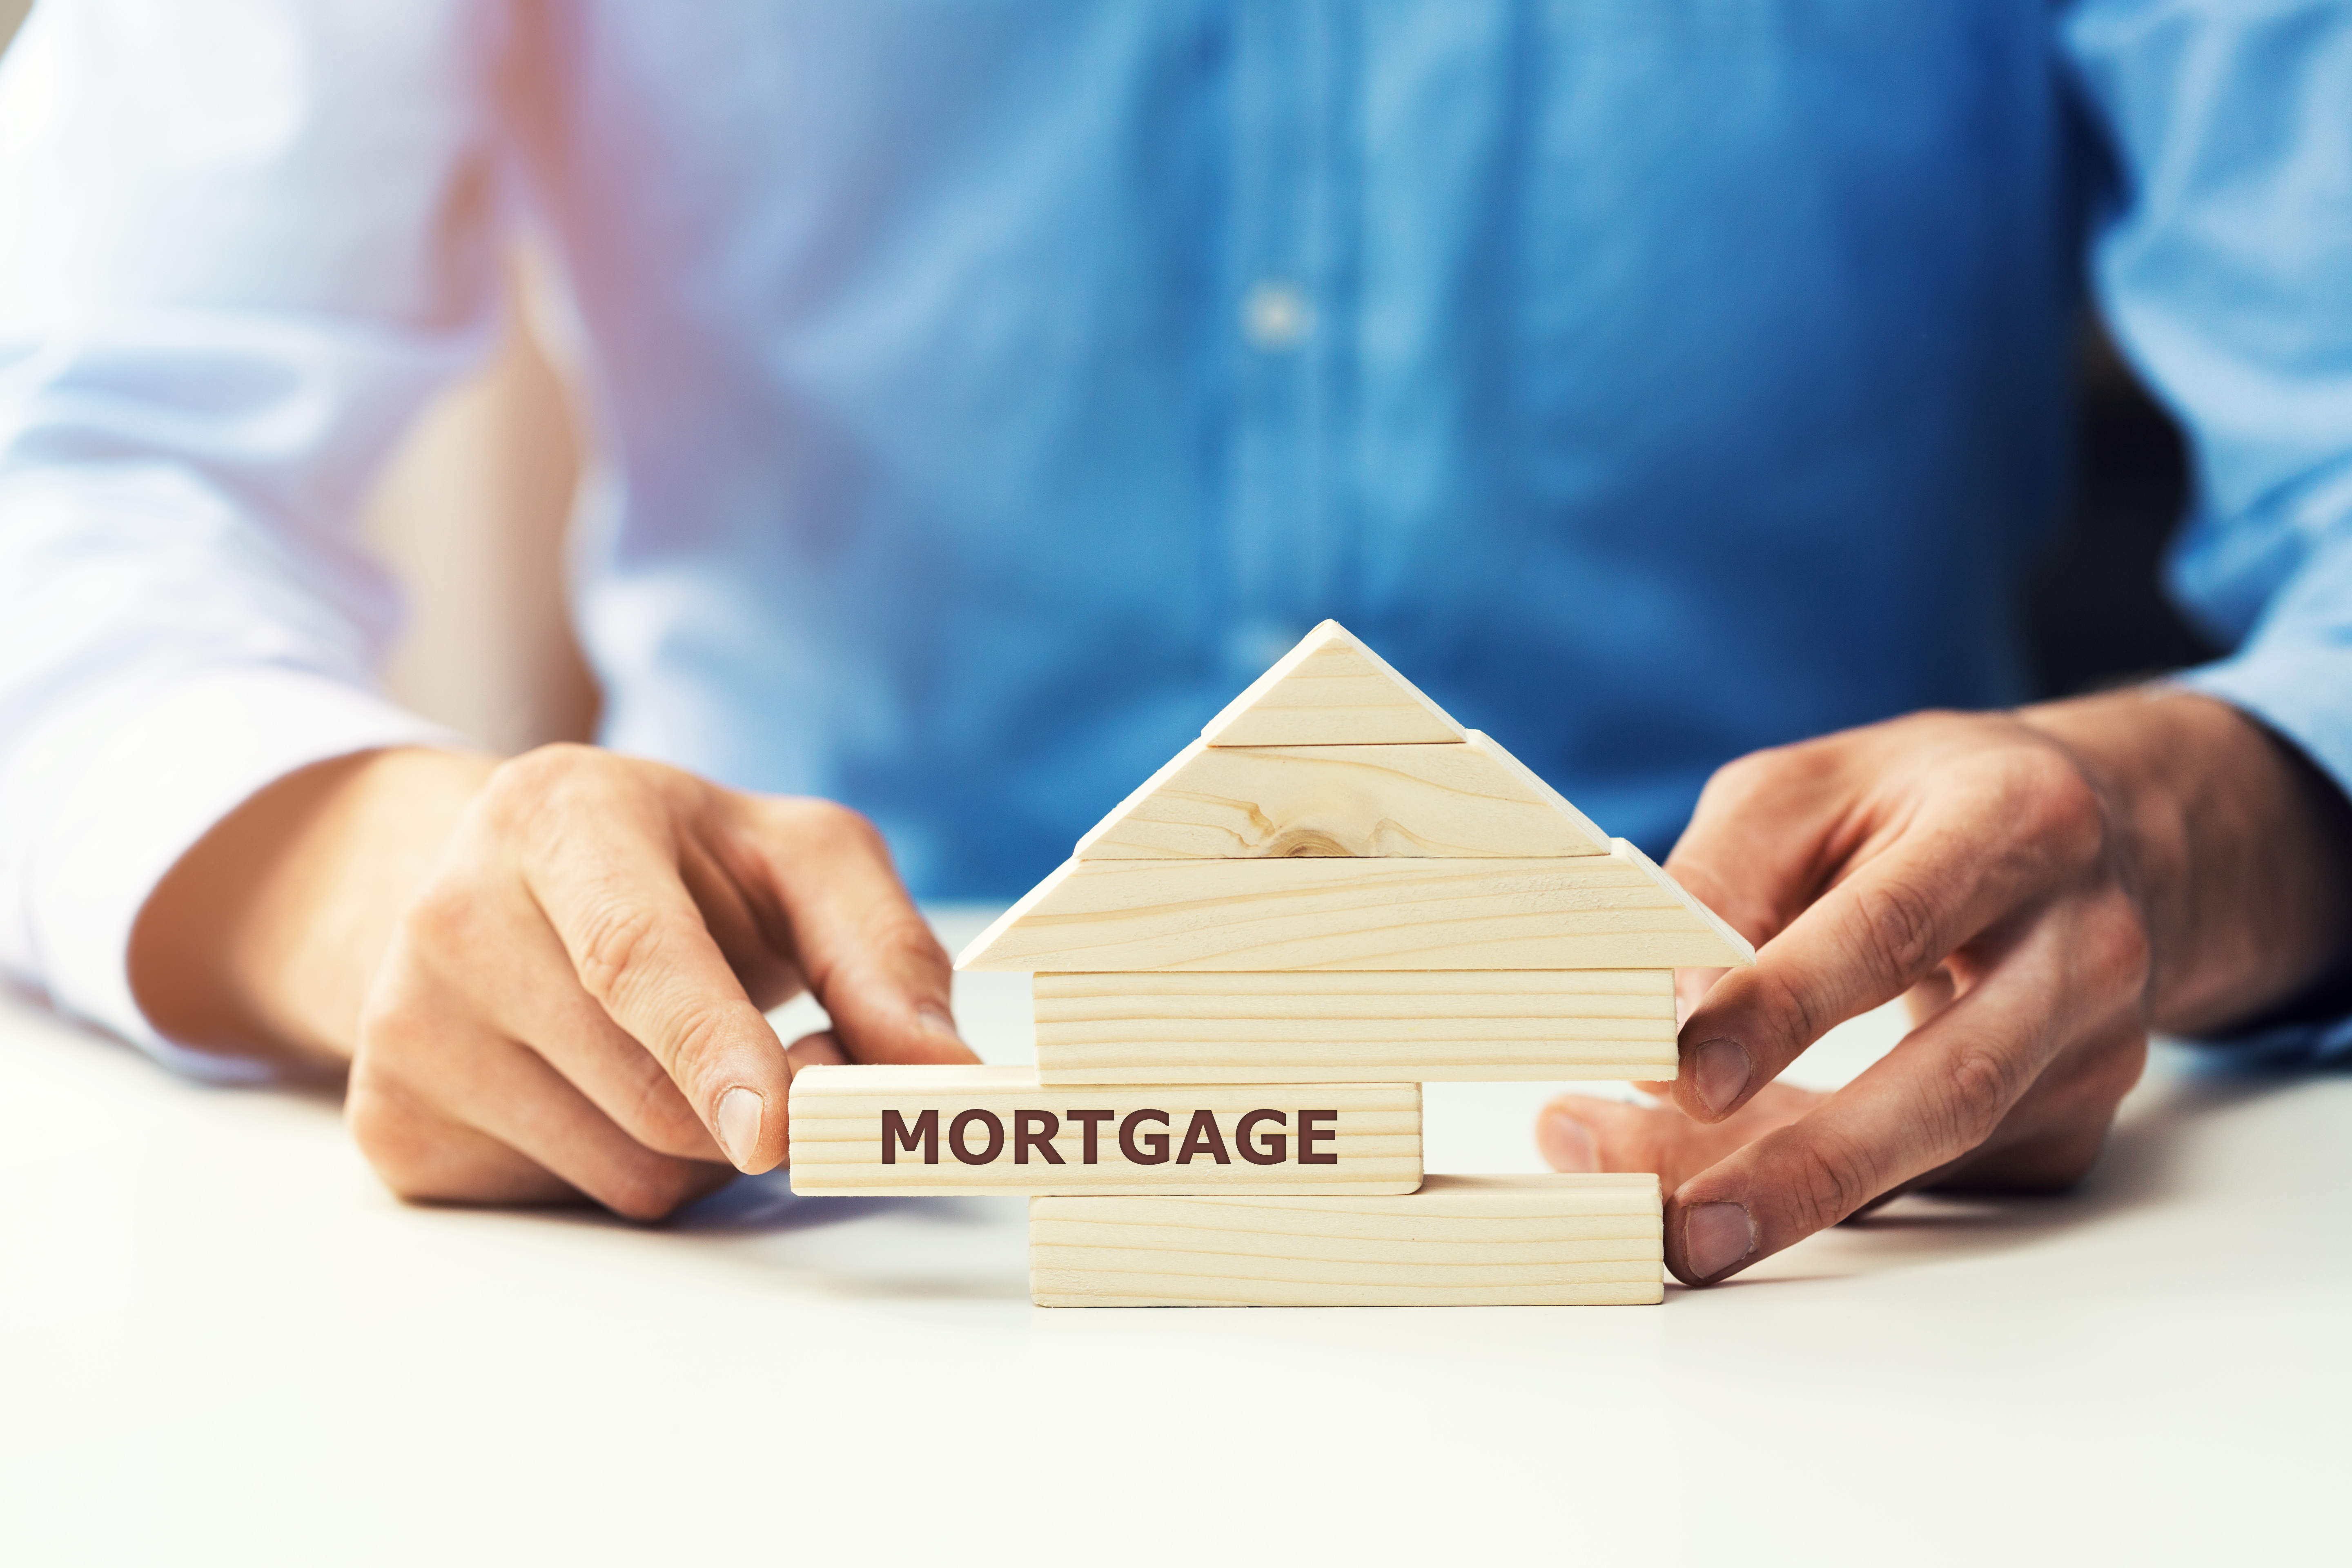 which type of mortgage is right for me?